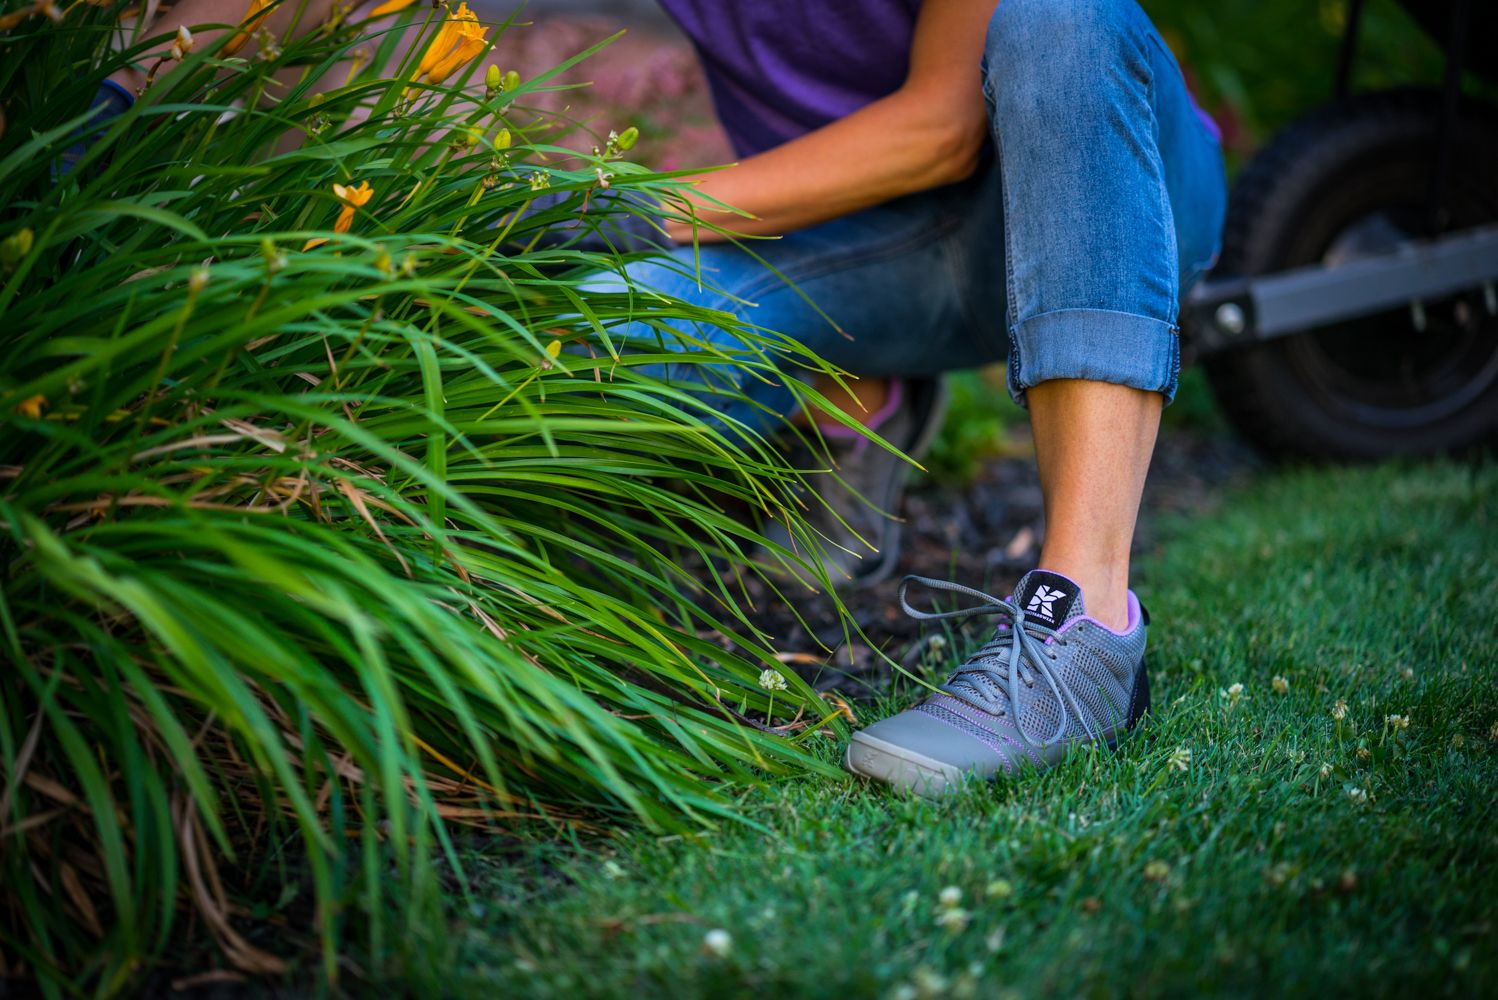 How Cute Is This Shoe Designed For Gardening And Yard Work Yard Work Gardening Shoes Lawn And Garden